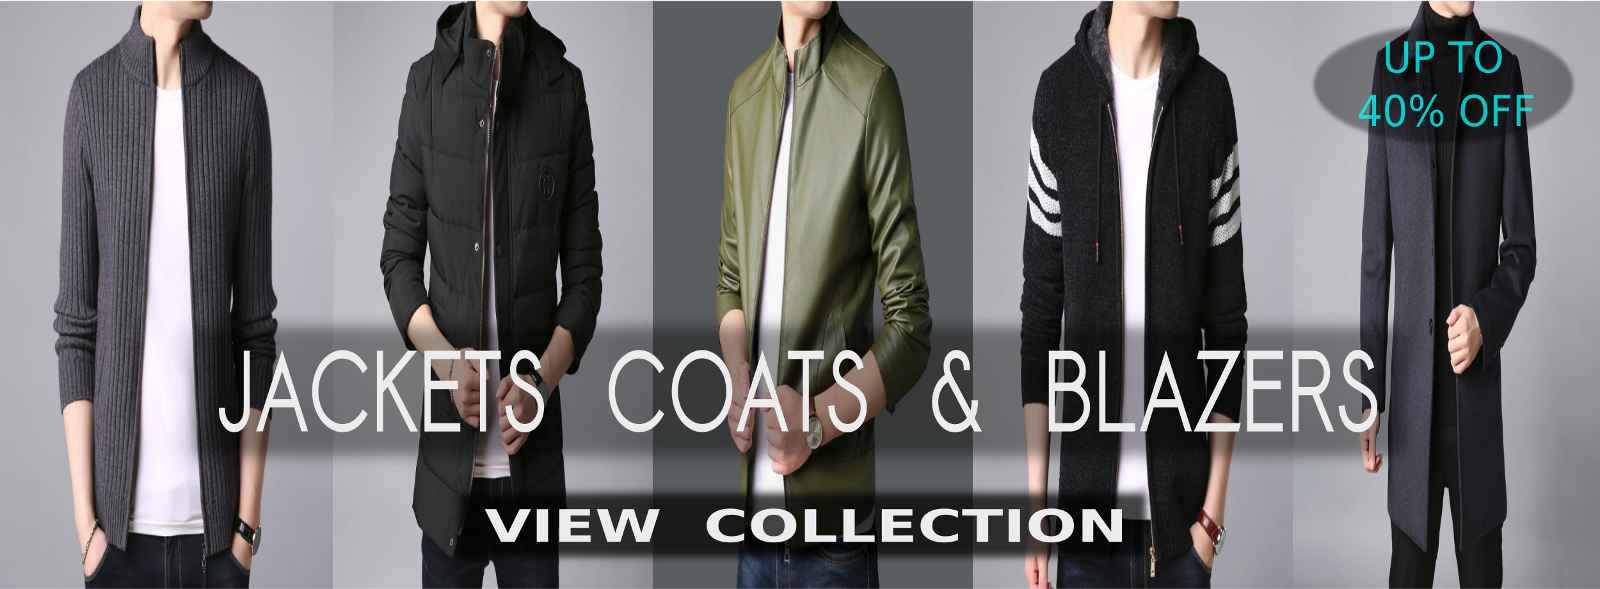 Stylish And Top Quality Jackets, Coats, Blazers, Denims, Sweaters, Cardigans, Parka Jackets, Leather Coats, Knitted Vests, Trench Coats, Hoodies And Pullovers For Men At Cheapest Price With Discounts Of Up To 30% Off On Shopperwear Fashion